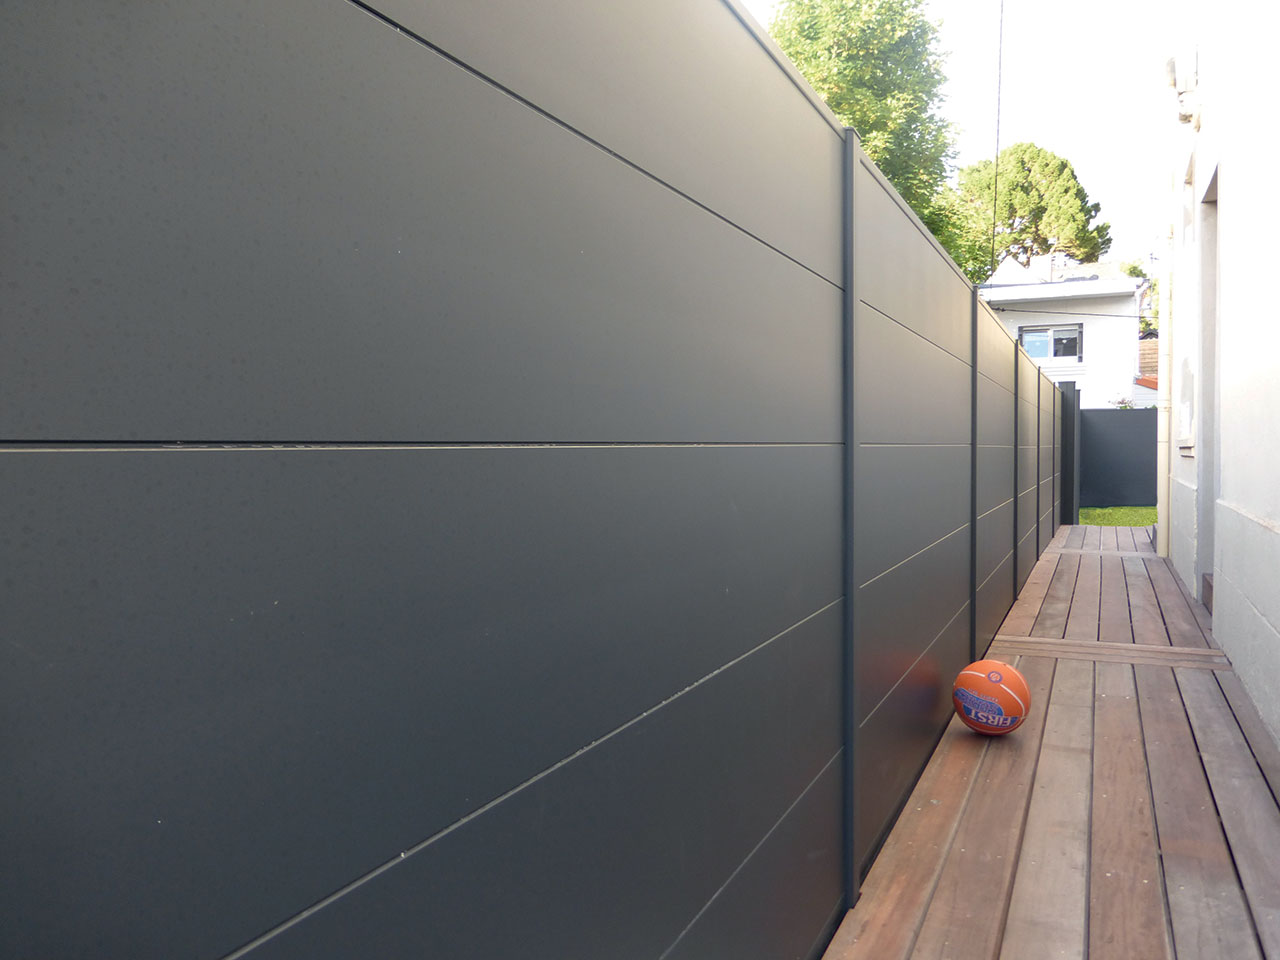 Cl ture pleine aluminium chaumont neufch teau mercier david for Cloture alu gris anthracite